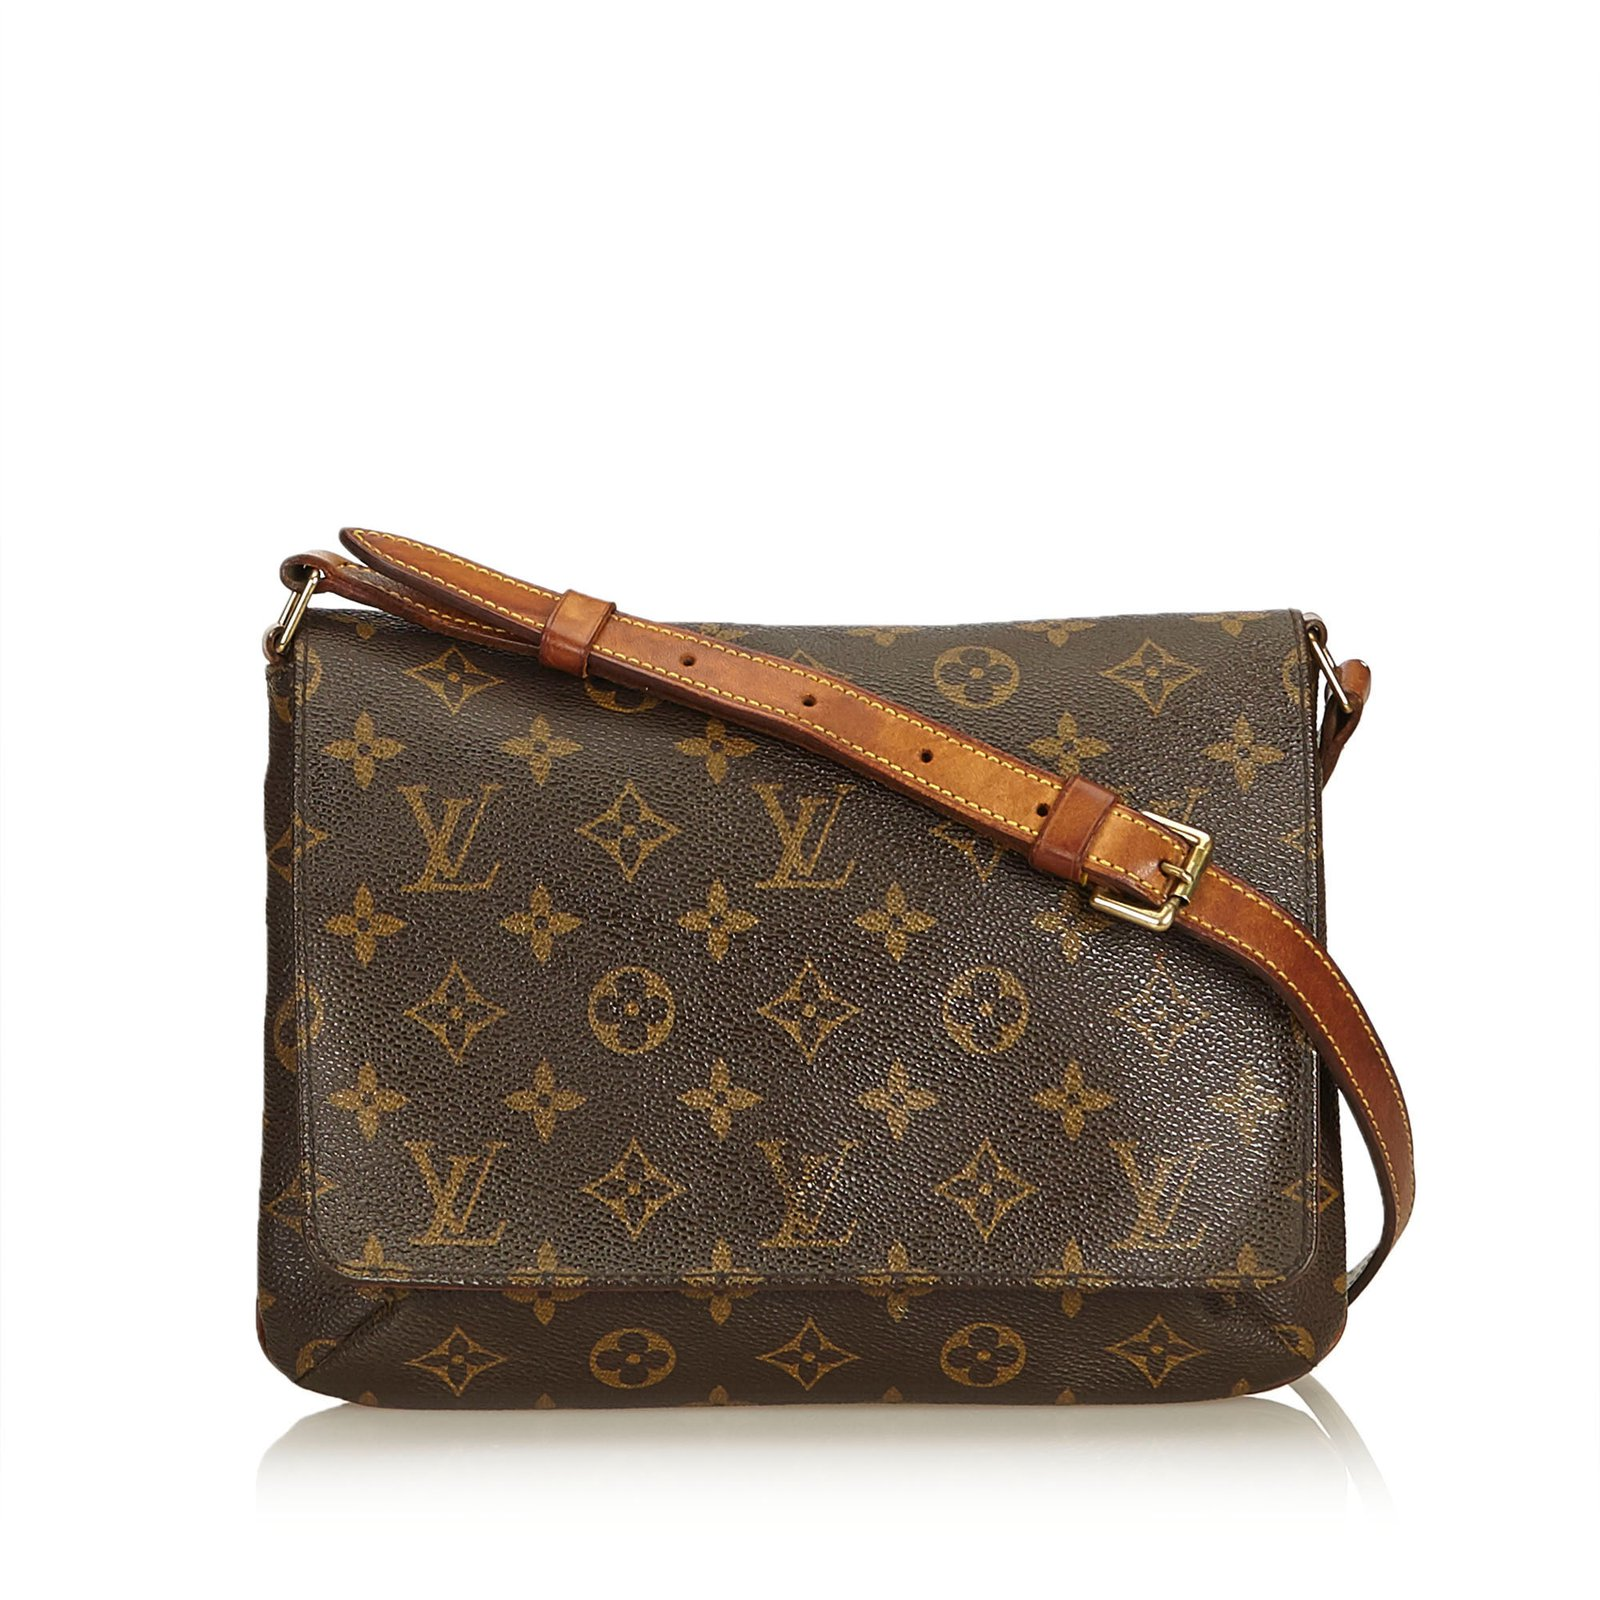 83b18e7f0163 Louis Vuitton Monogram Musette Tango Short Strap Handbags Leather ...